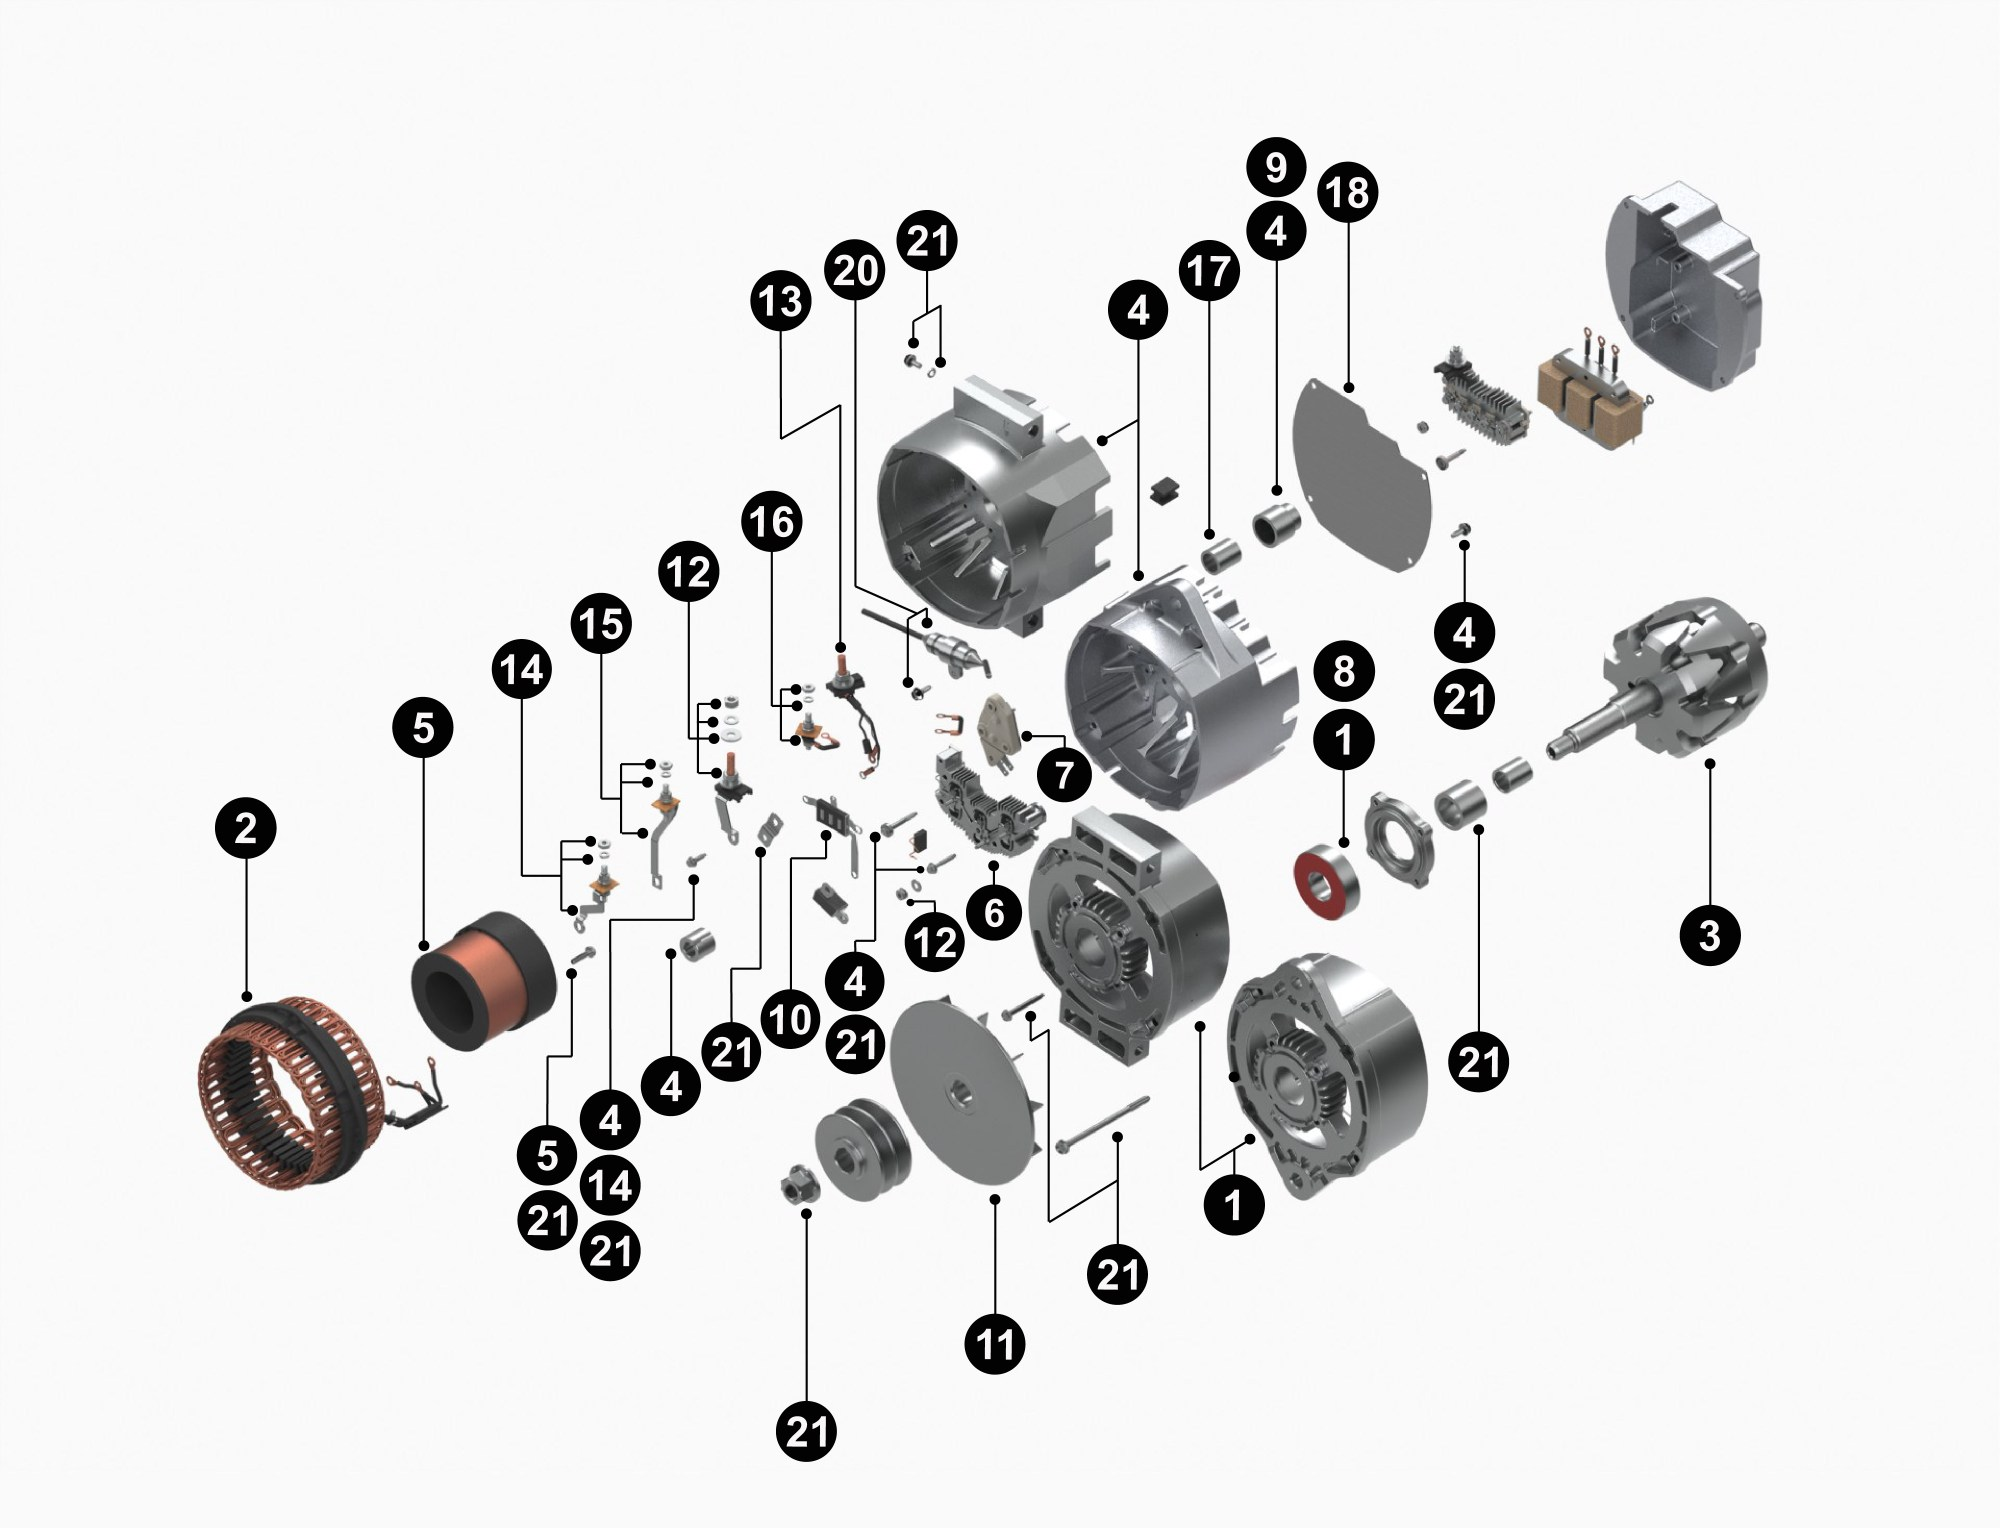 hight resolution of 50dn alternator diagram wiring diagram centre19011164 33si new alternator product details delco remy19011164 33si new alternator